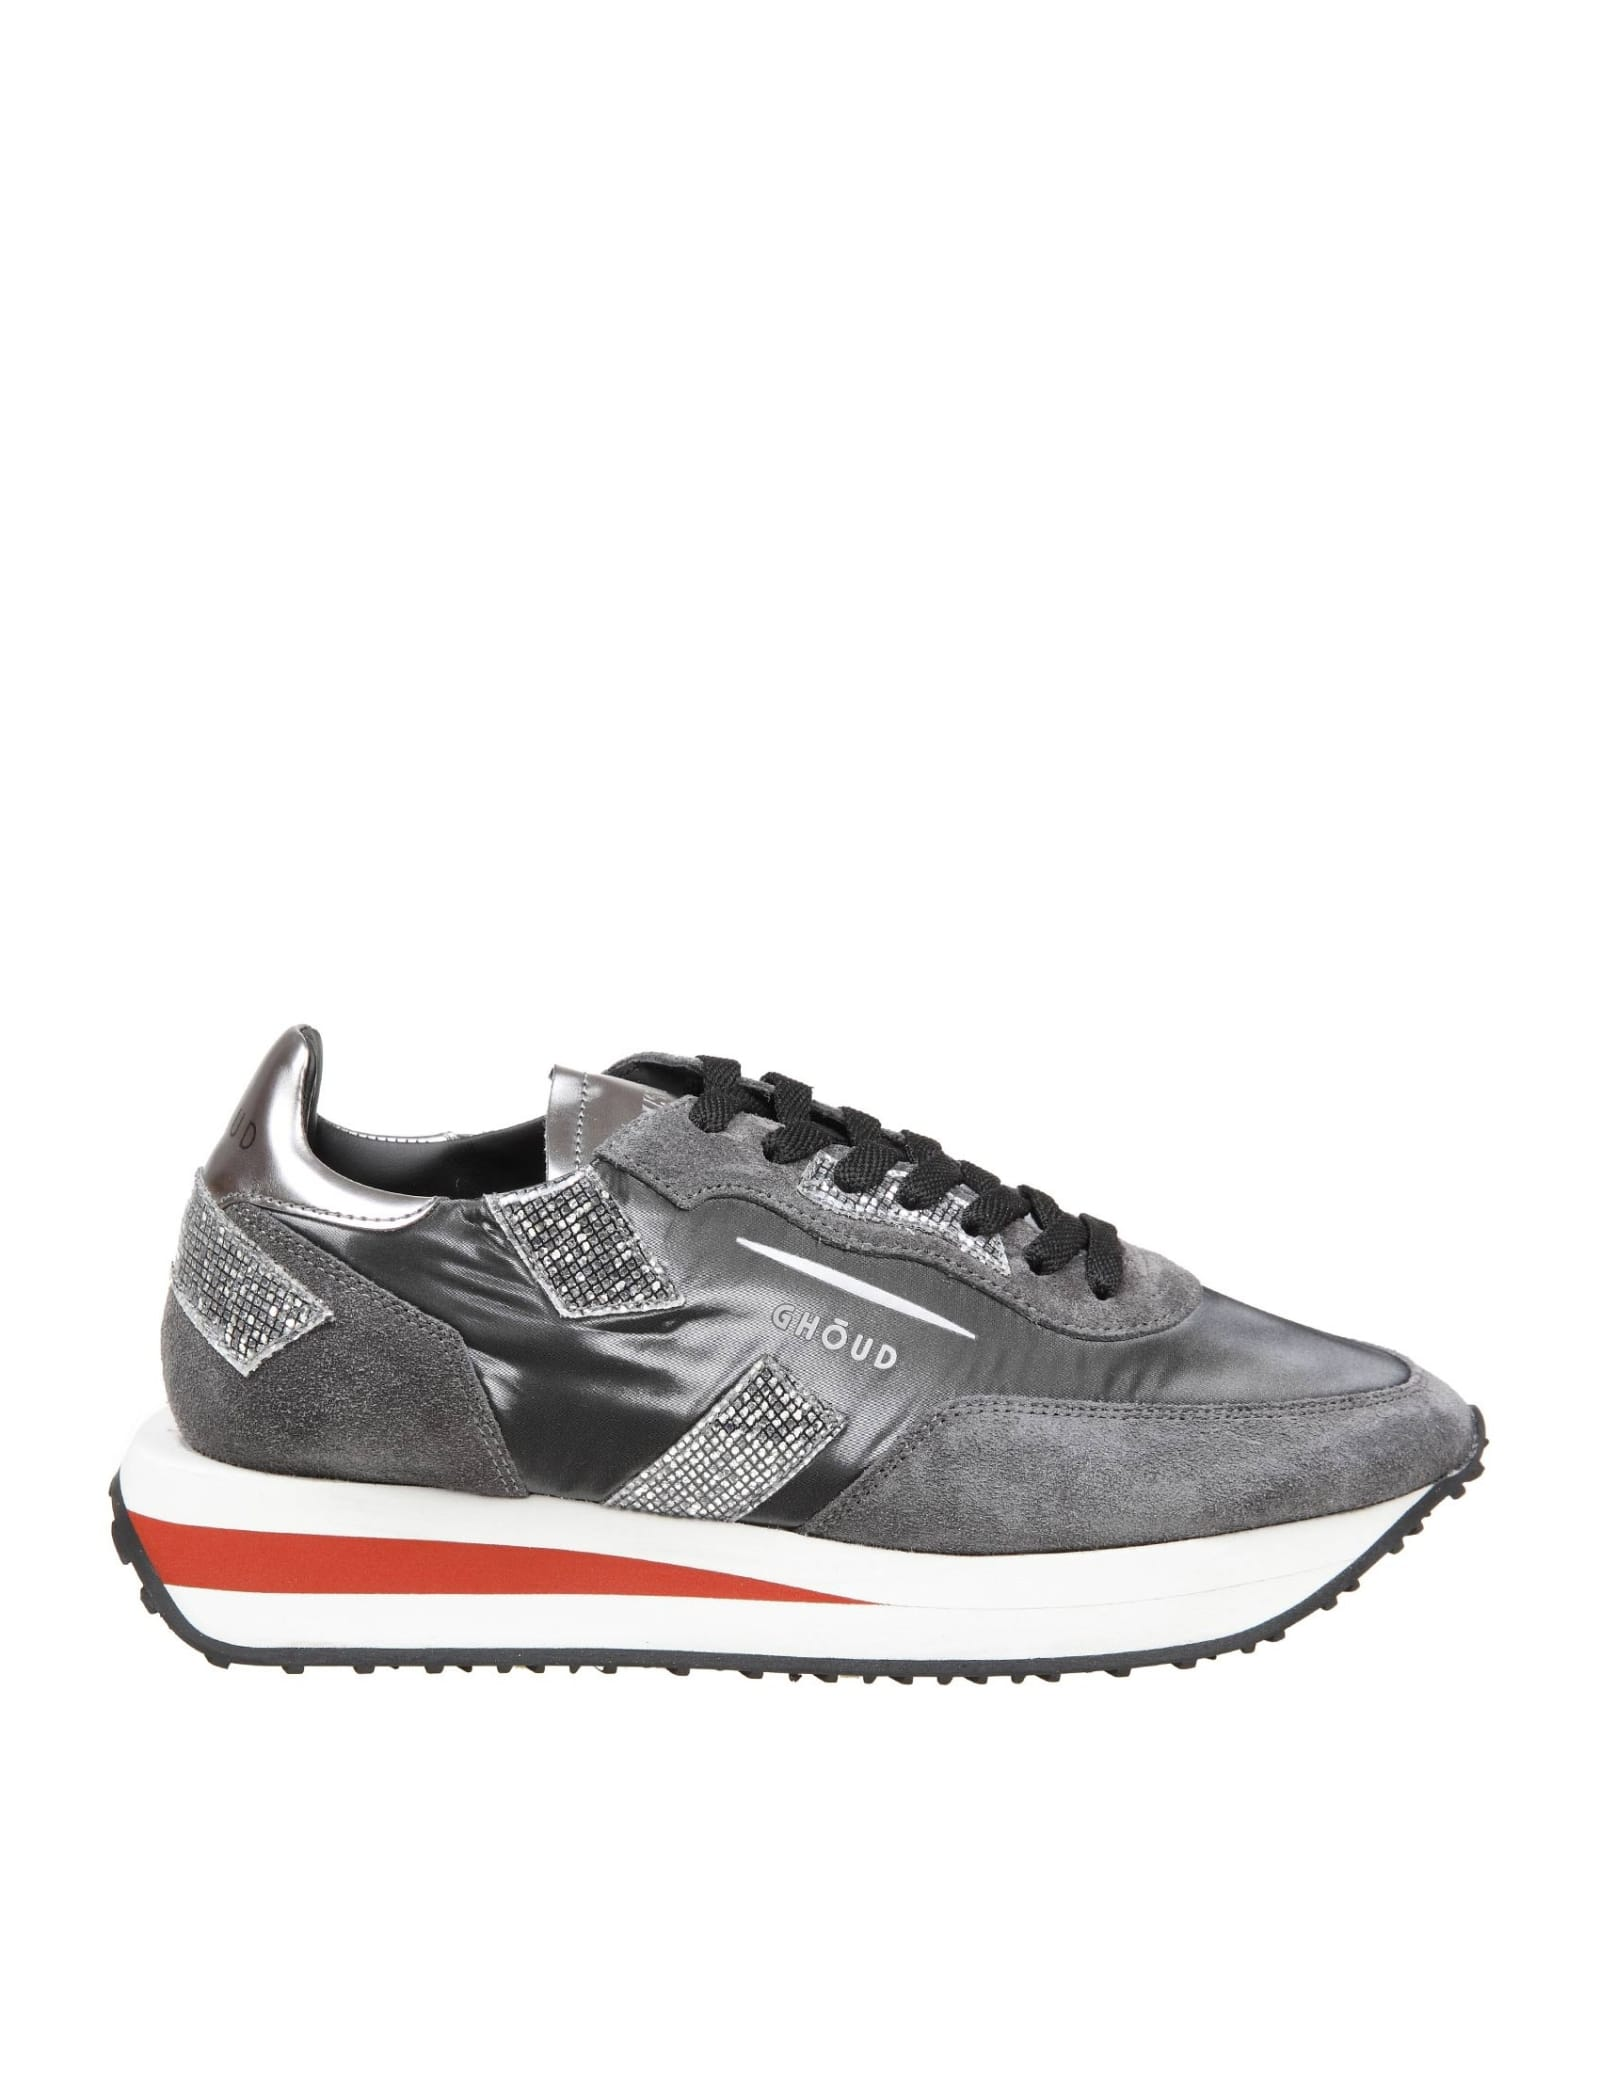 Ghoud GHOUD RUSH SUEDE AND NYLON SNEAKERS COLOR GRAY